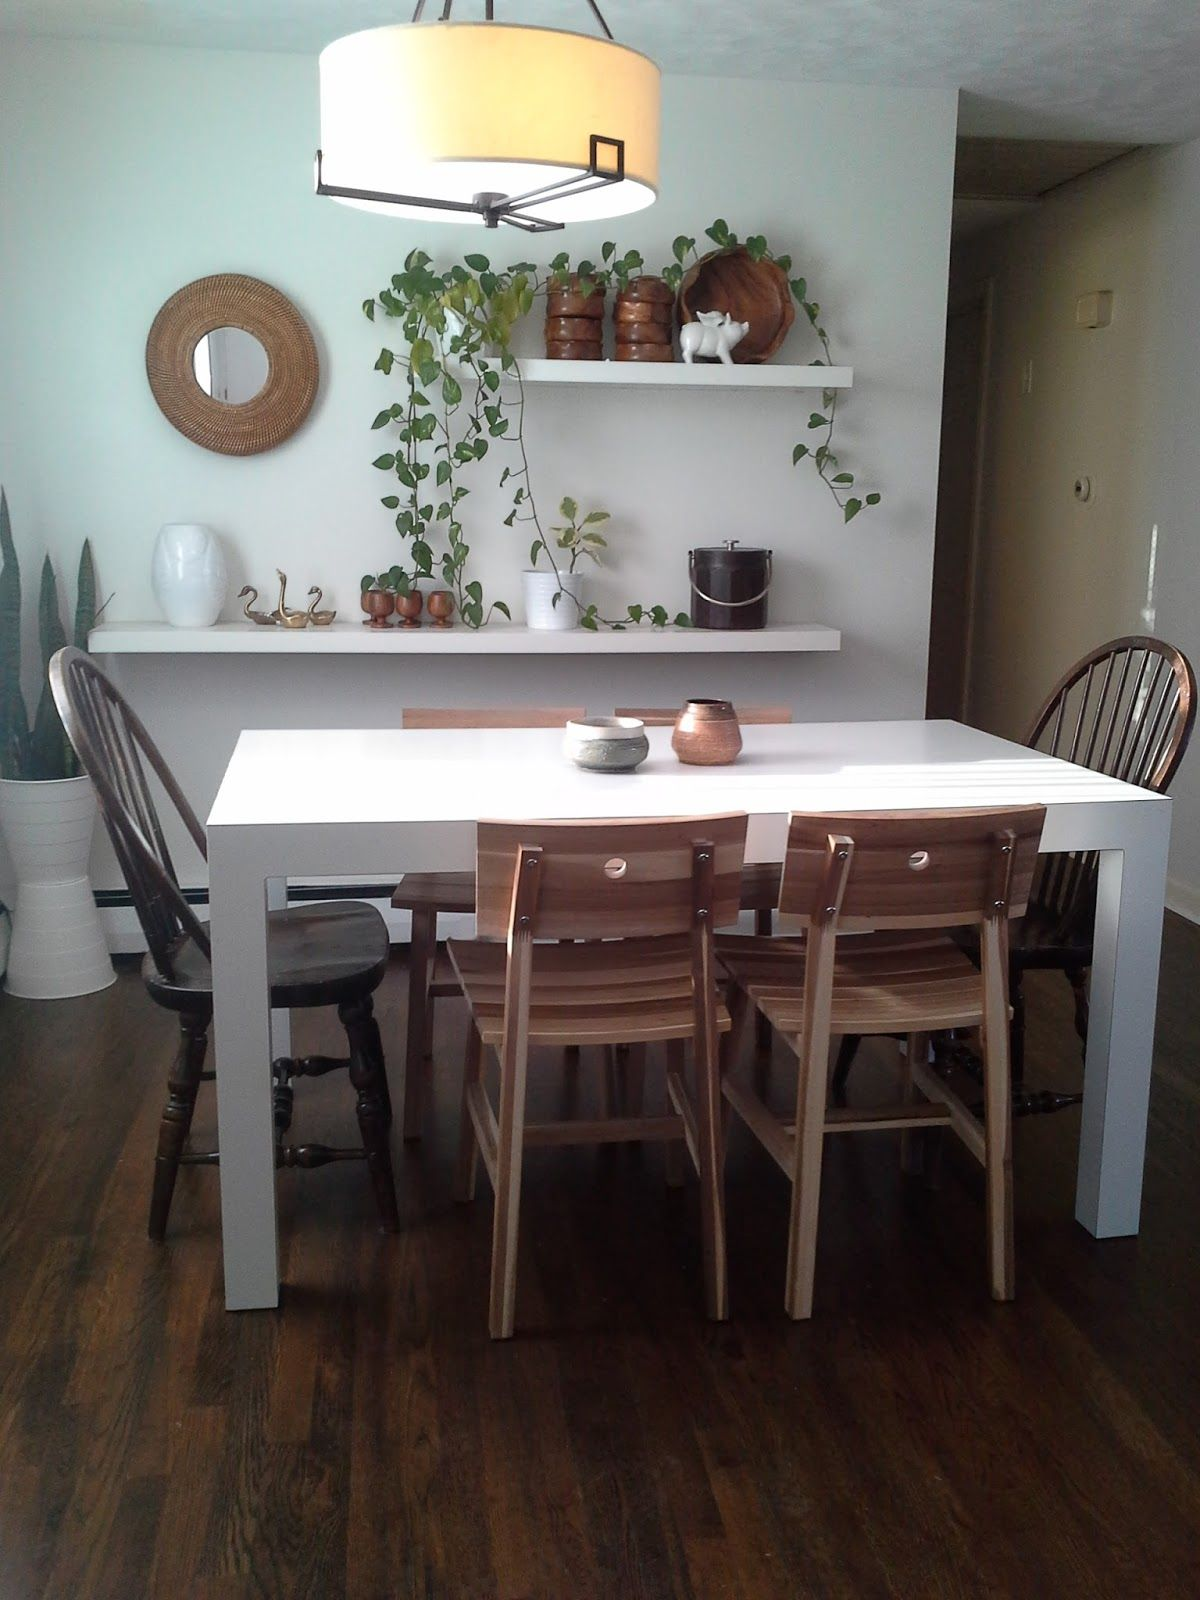 Ikea Skogsta Chair Parsons Dining Table | furnishings | Pinterest ...